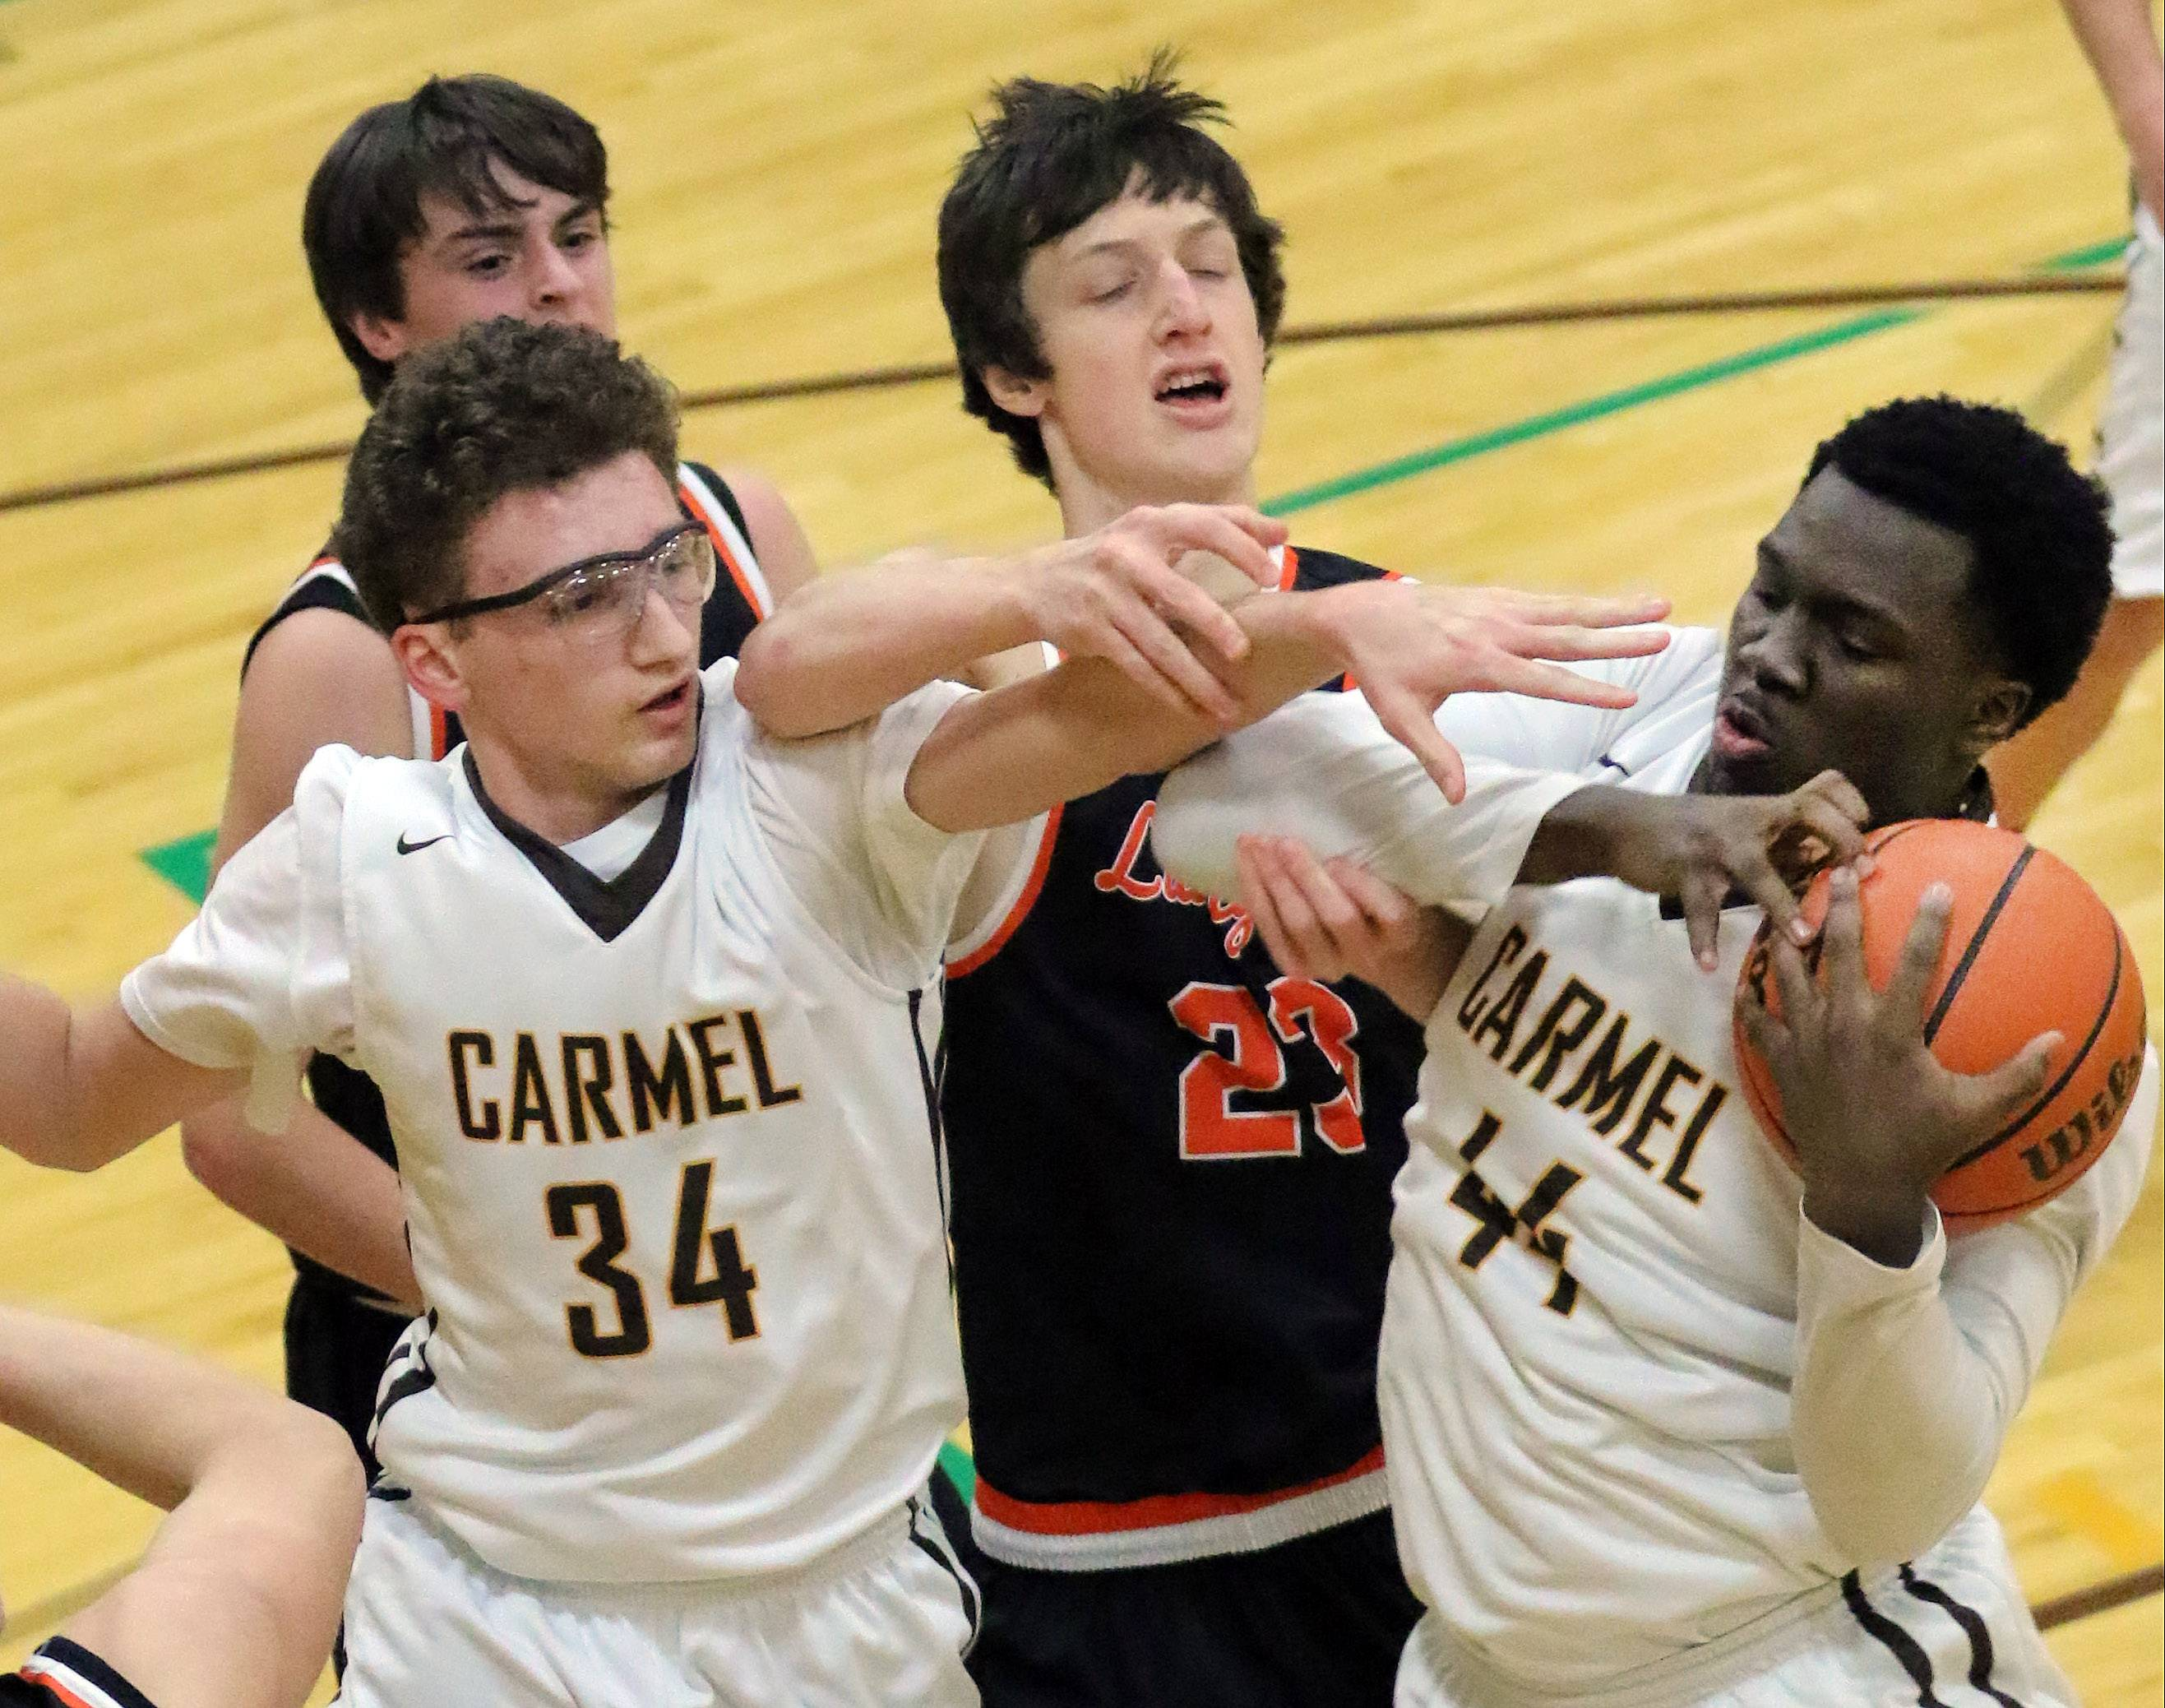 From left, Carmel's Jonathan Roeser (34), Libertyville's Drew Peterson and Carmel's Jalen Snell battle for a rebound Tuesday night in Mundelein.